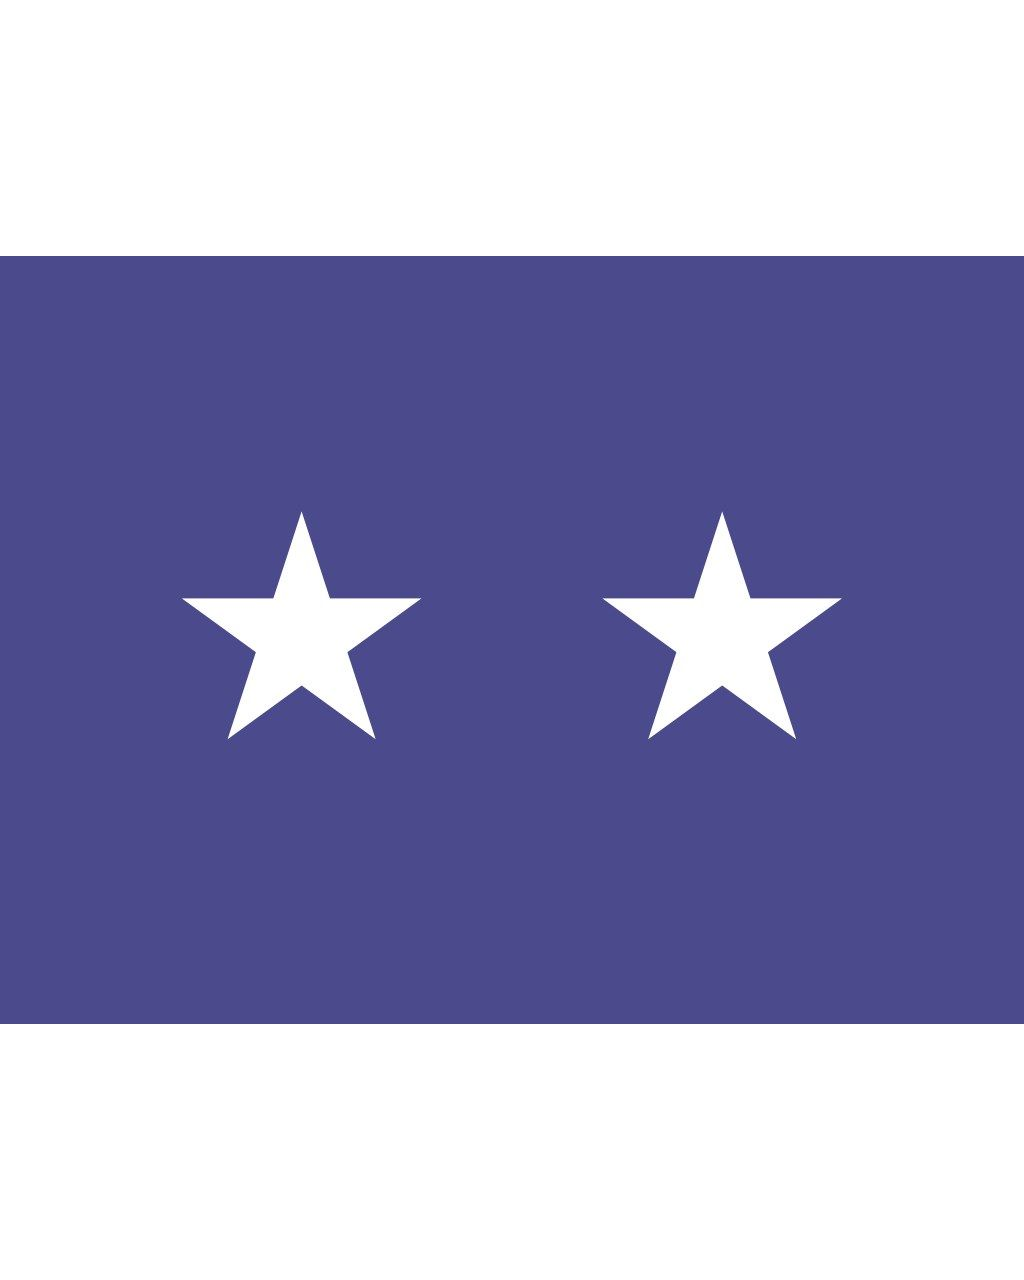 3 X 4 Ft Air Force 2 Star General Flag Indoor Display